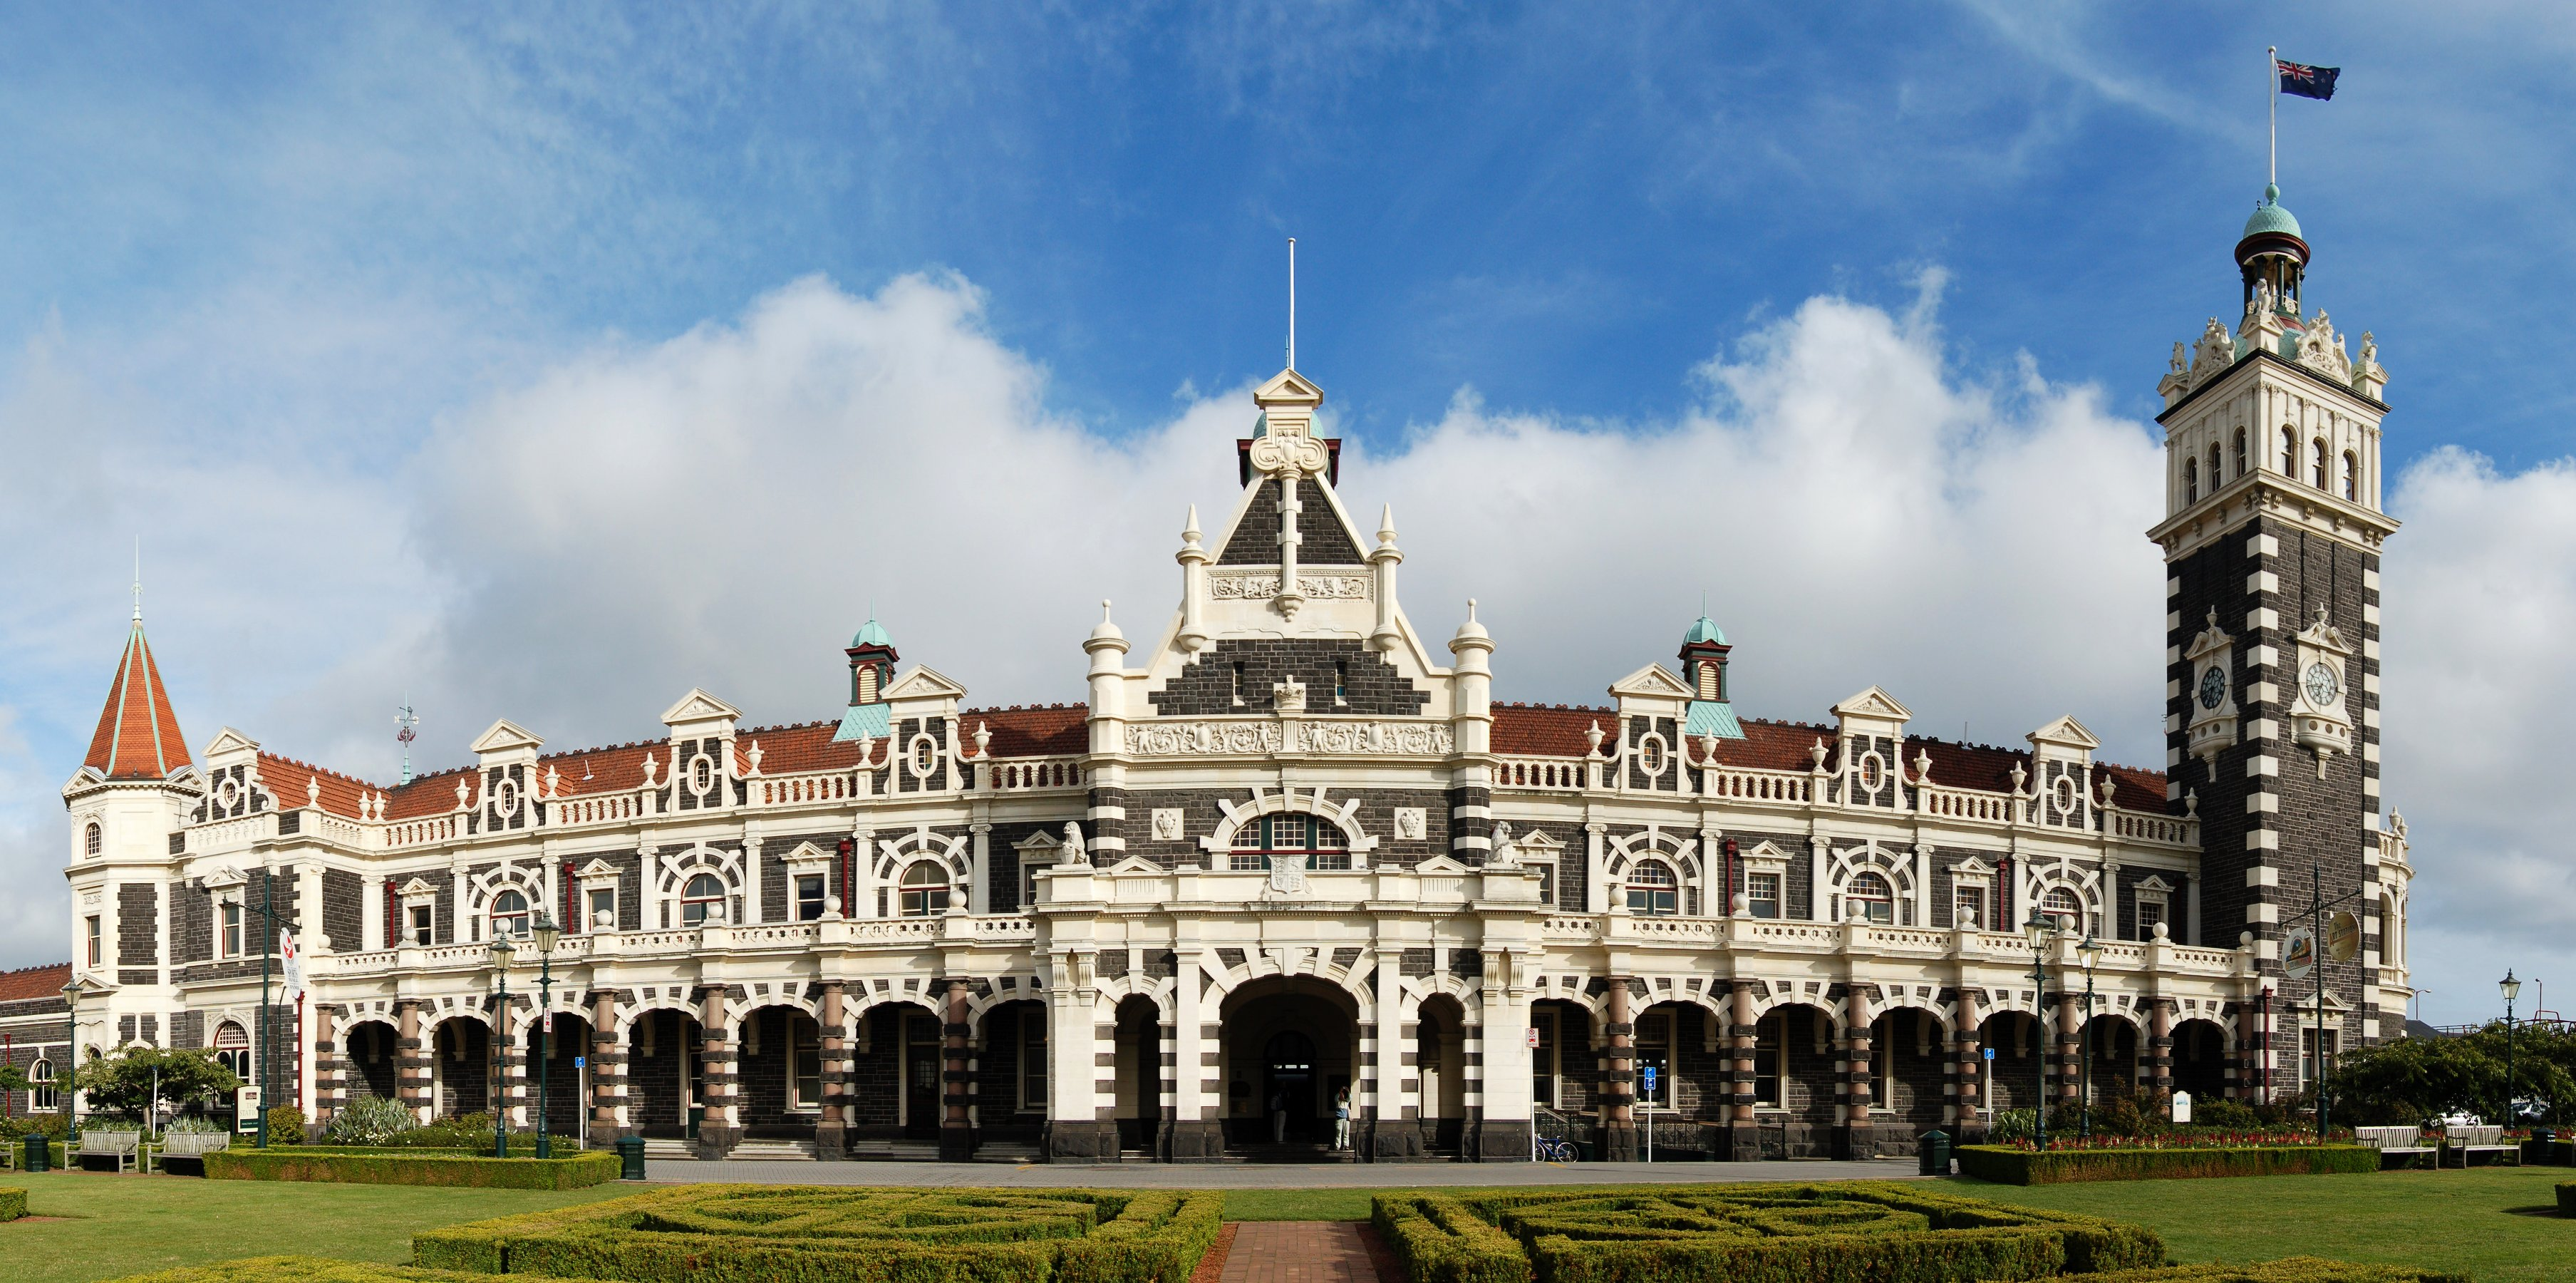 Dunedin_Railway_Station_Full_Exterior